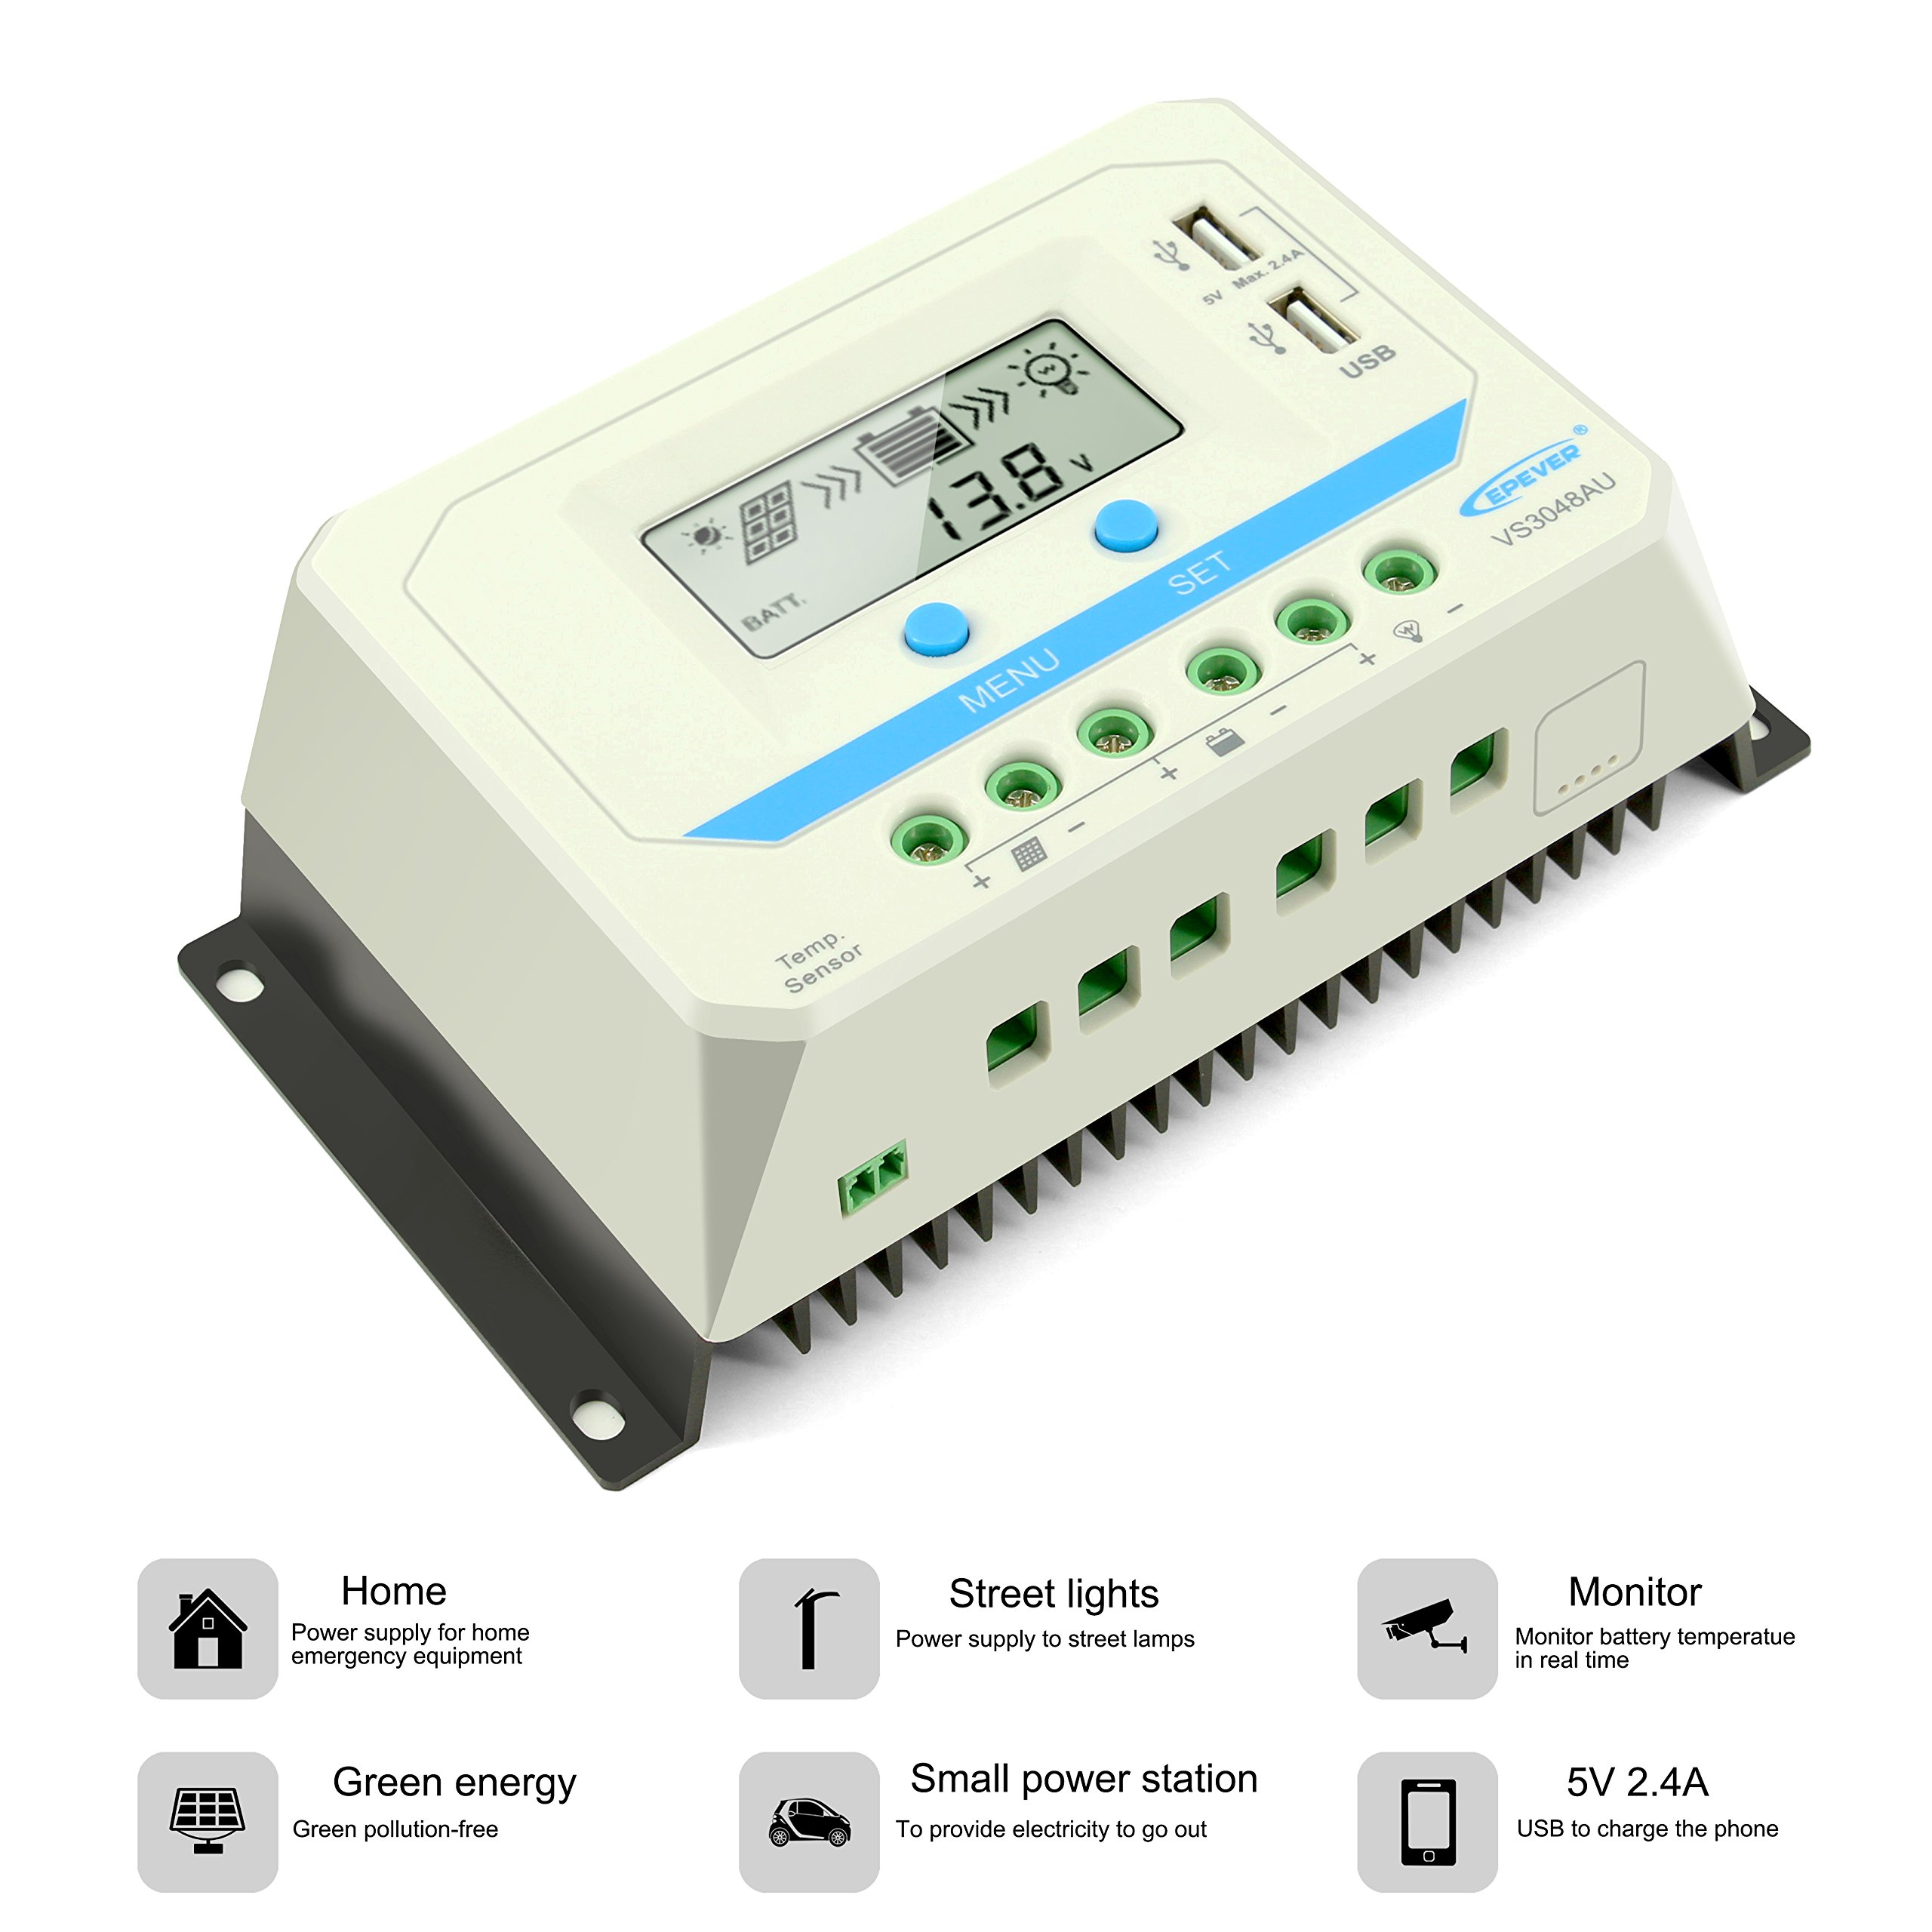 EPEVER 30A Solar Charge Controller, 12V/24V/36V/48V Intelligent Regulator with Dual USB Port PWM LCD Display